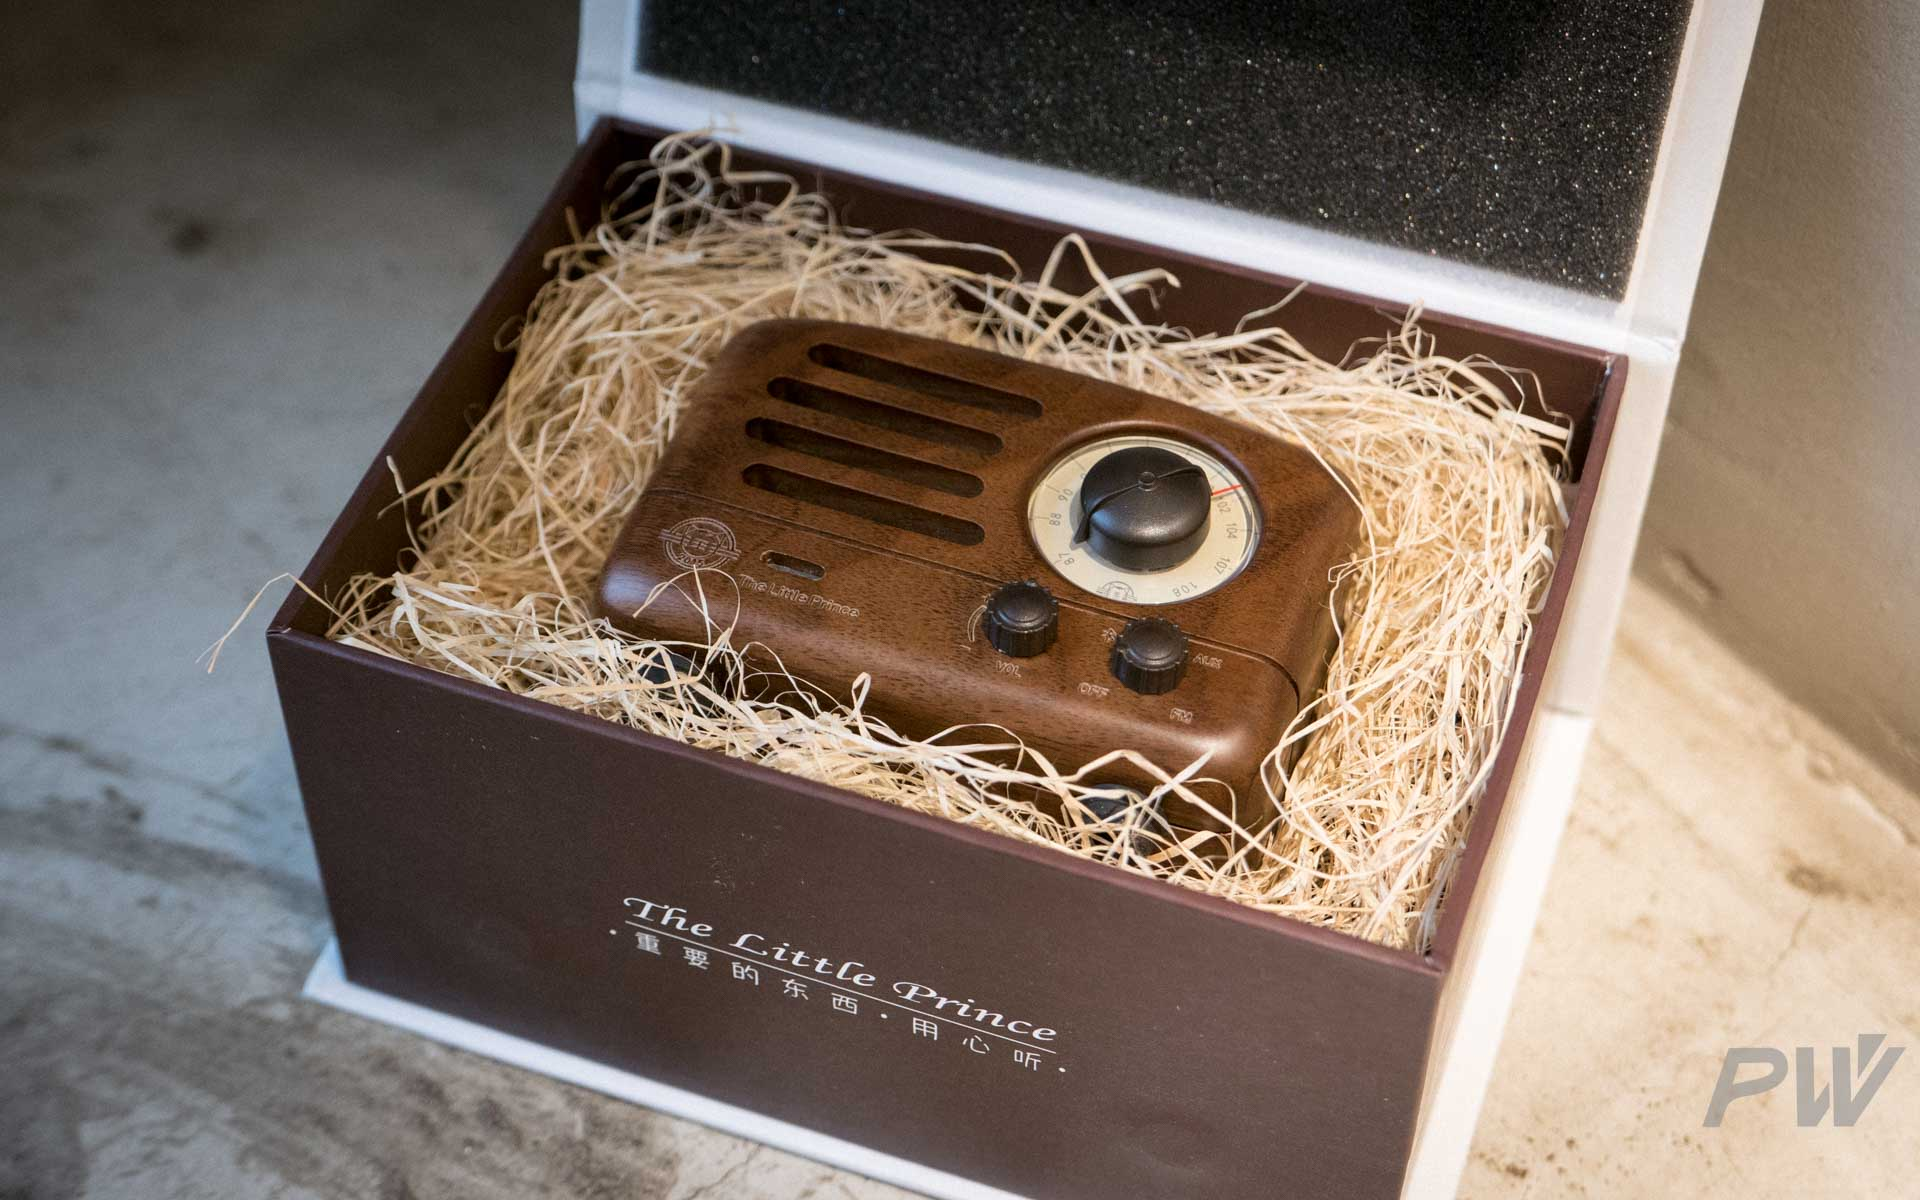 Mao King the little prince radio bluetooth speaker PingWest Photo by Hao Ying-5